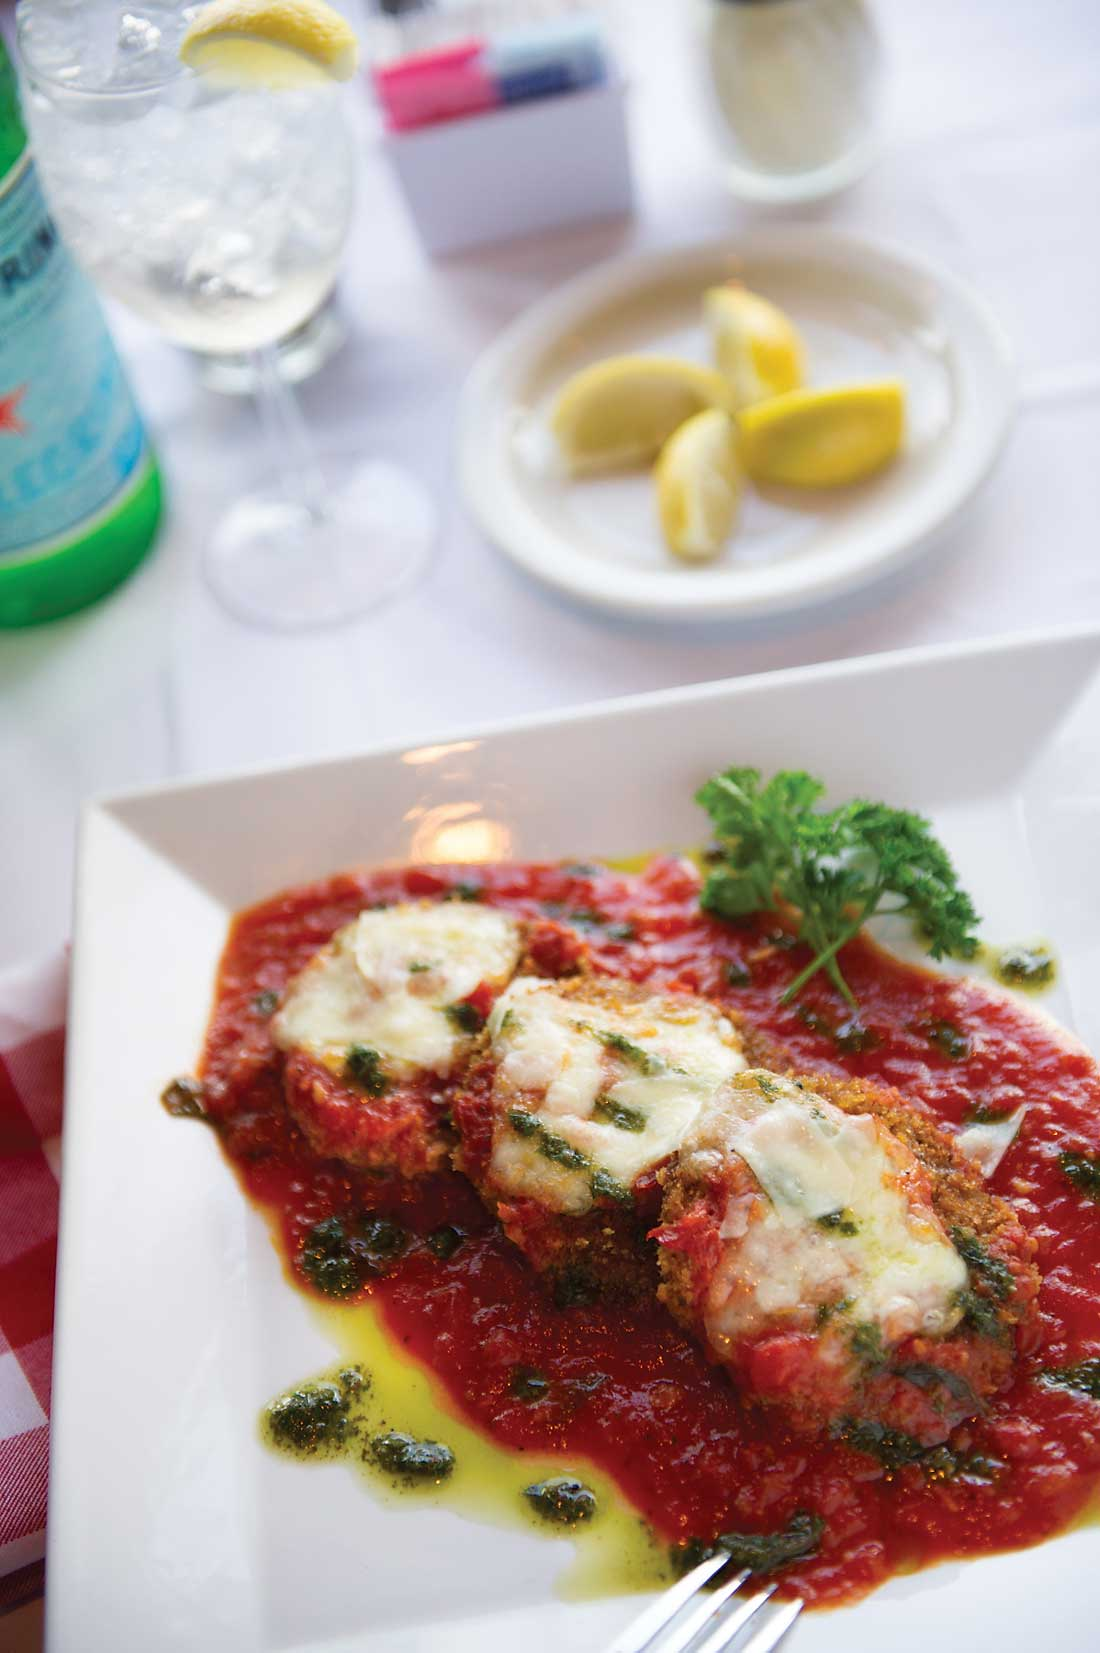 Don't let leisurely service keep you from Spazzio's eggplant medallions.